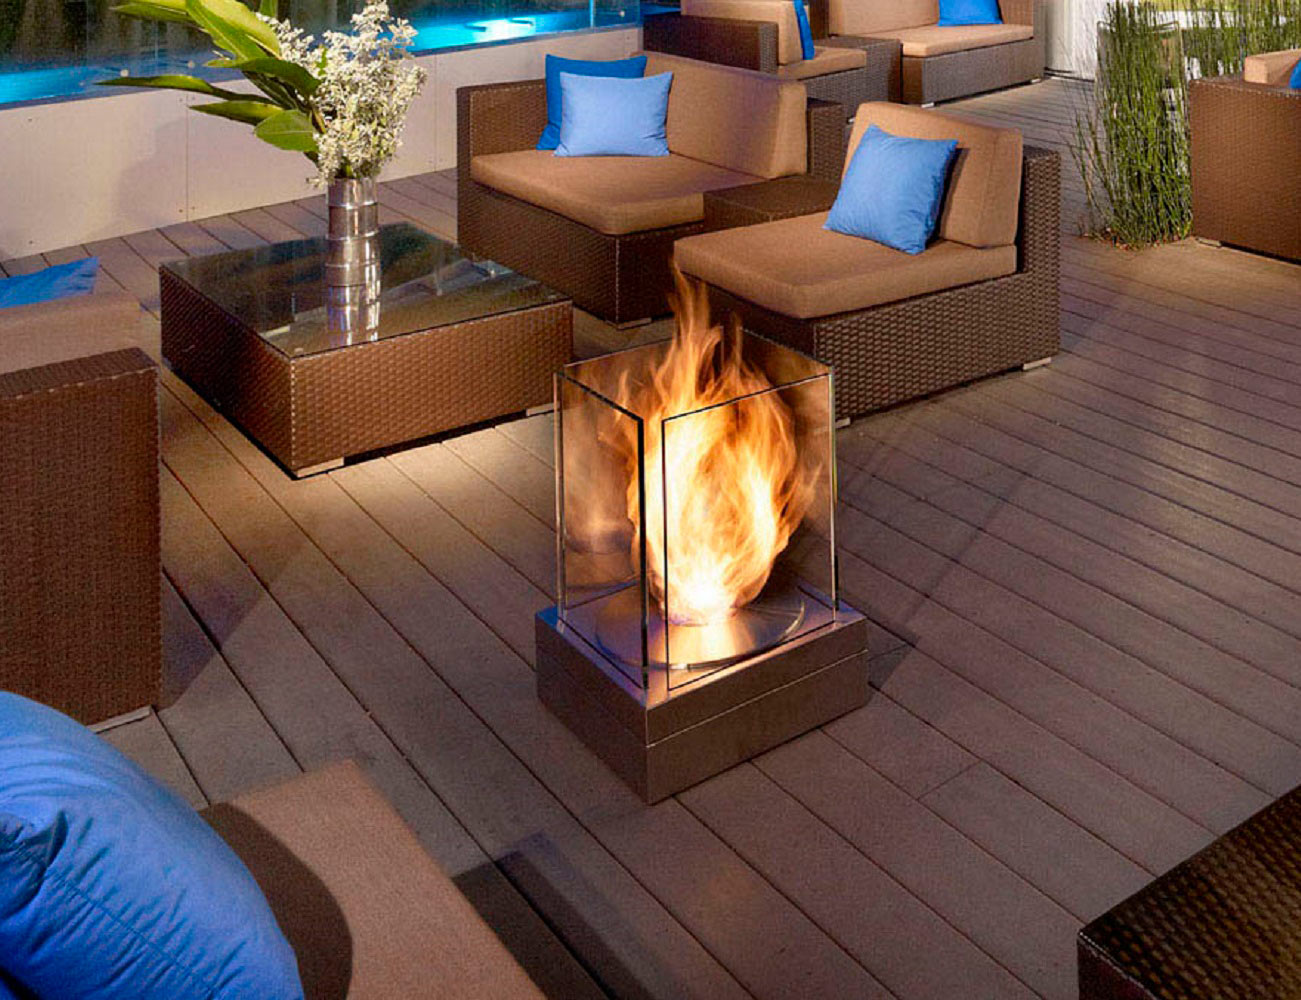 EcoSmart Fire Mini T Ventless Outdoor Fireplace